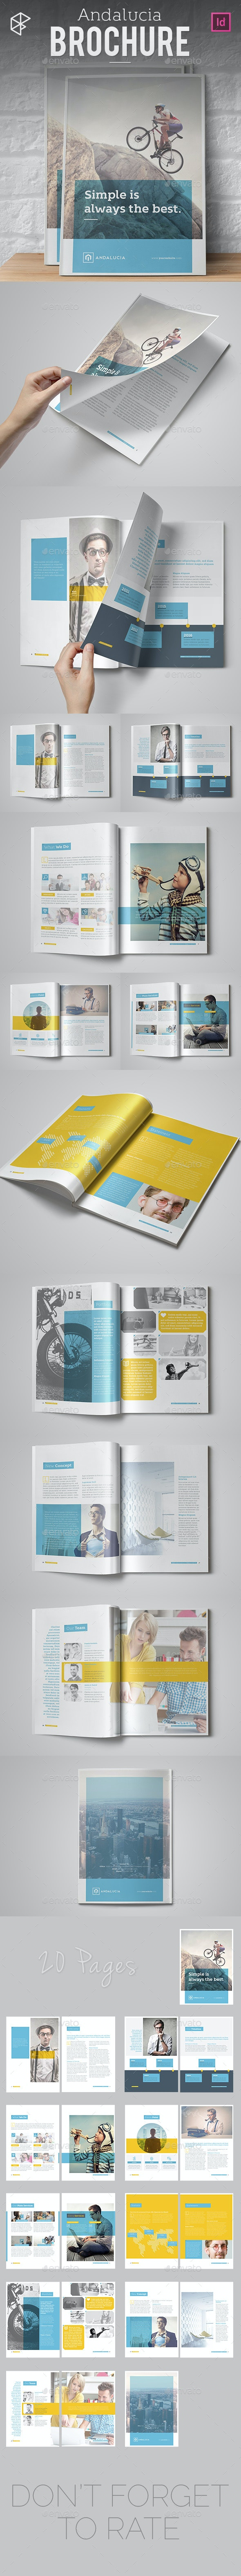 15 Best Brochure Templates  for February 2019